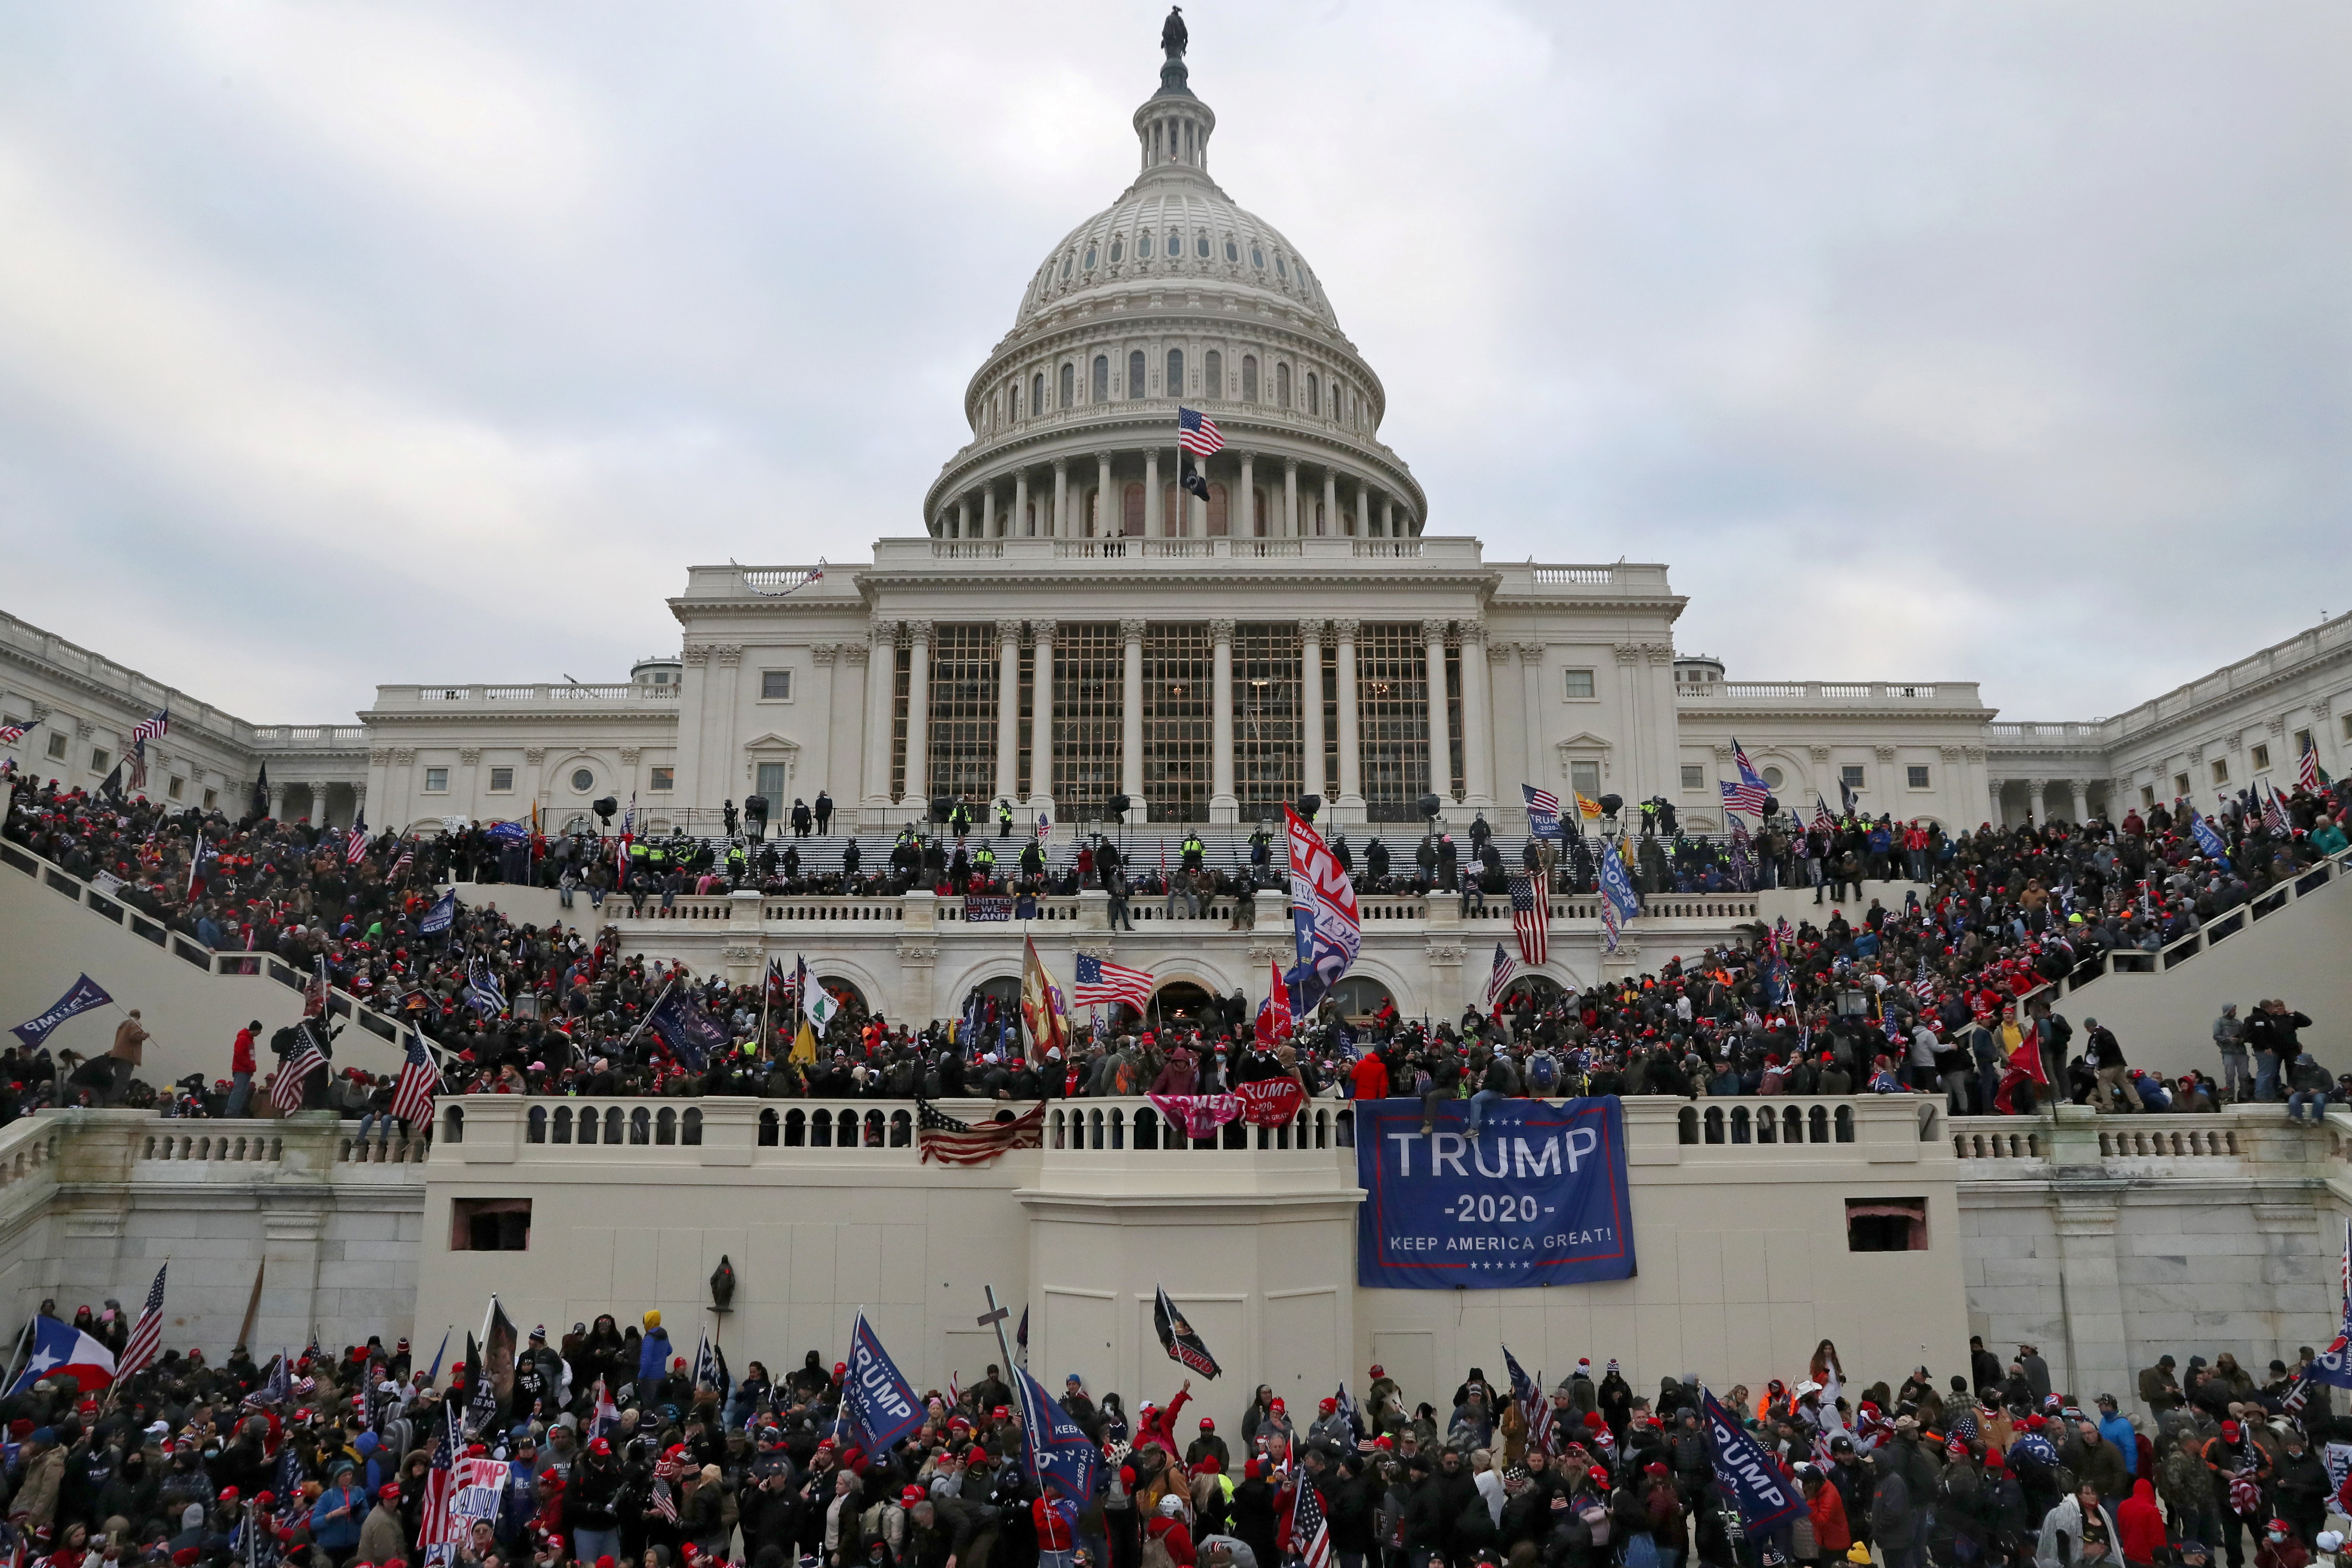 A mob of supporters of U.S. President Donald Trump storm the U.S. Capitol Building in Washington, U.S., January 6, 2021. Picture taken January 6, 2021. REUTERS/Leah Millis